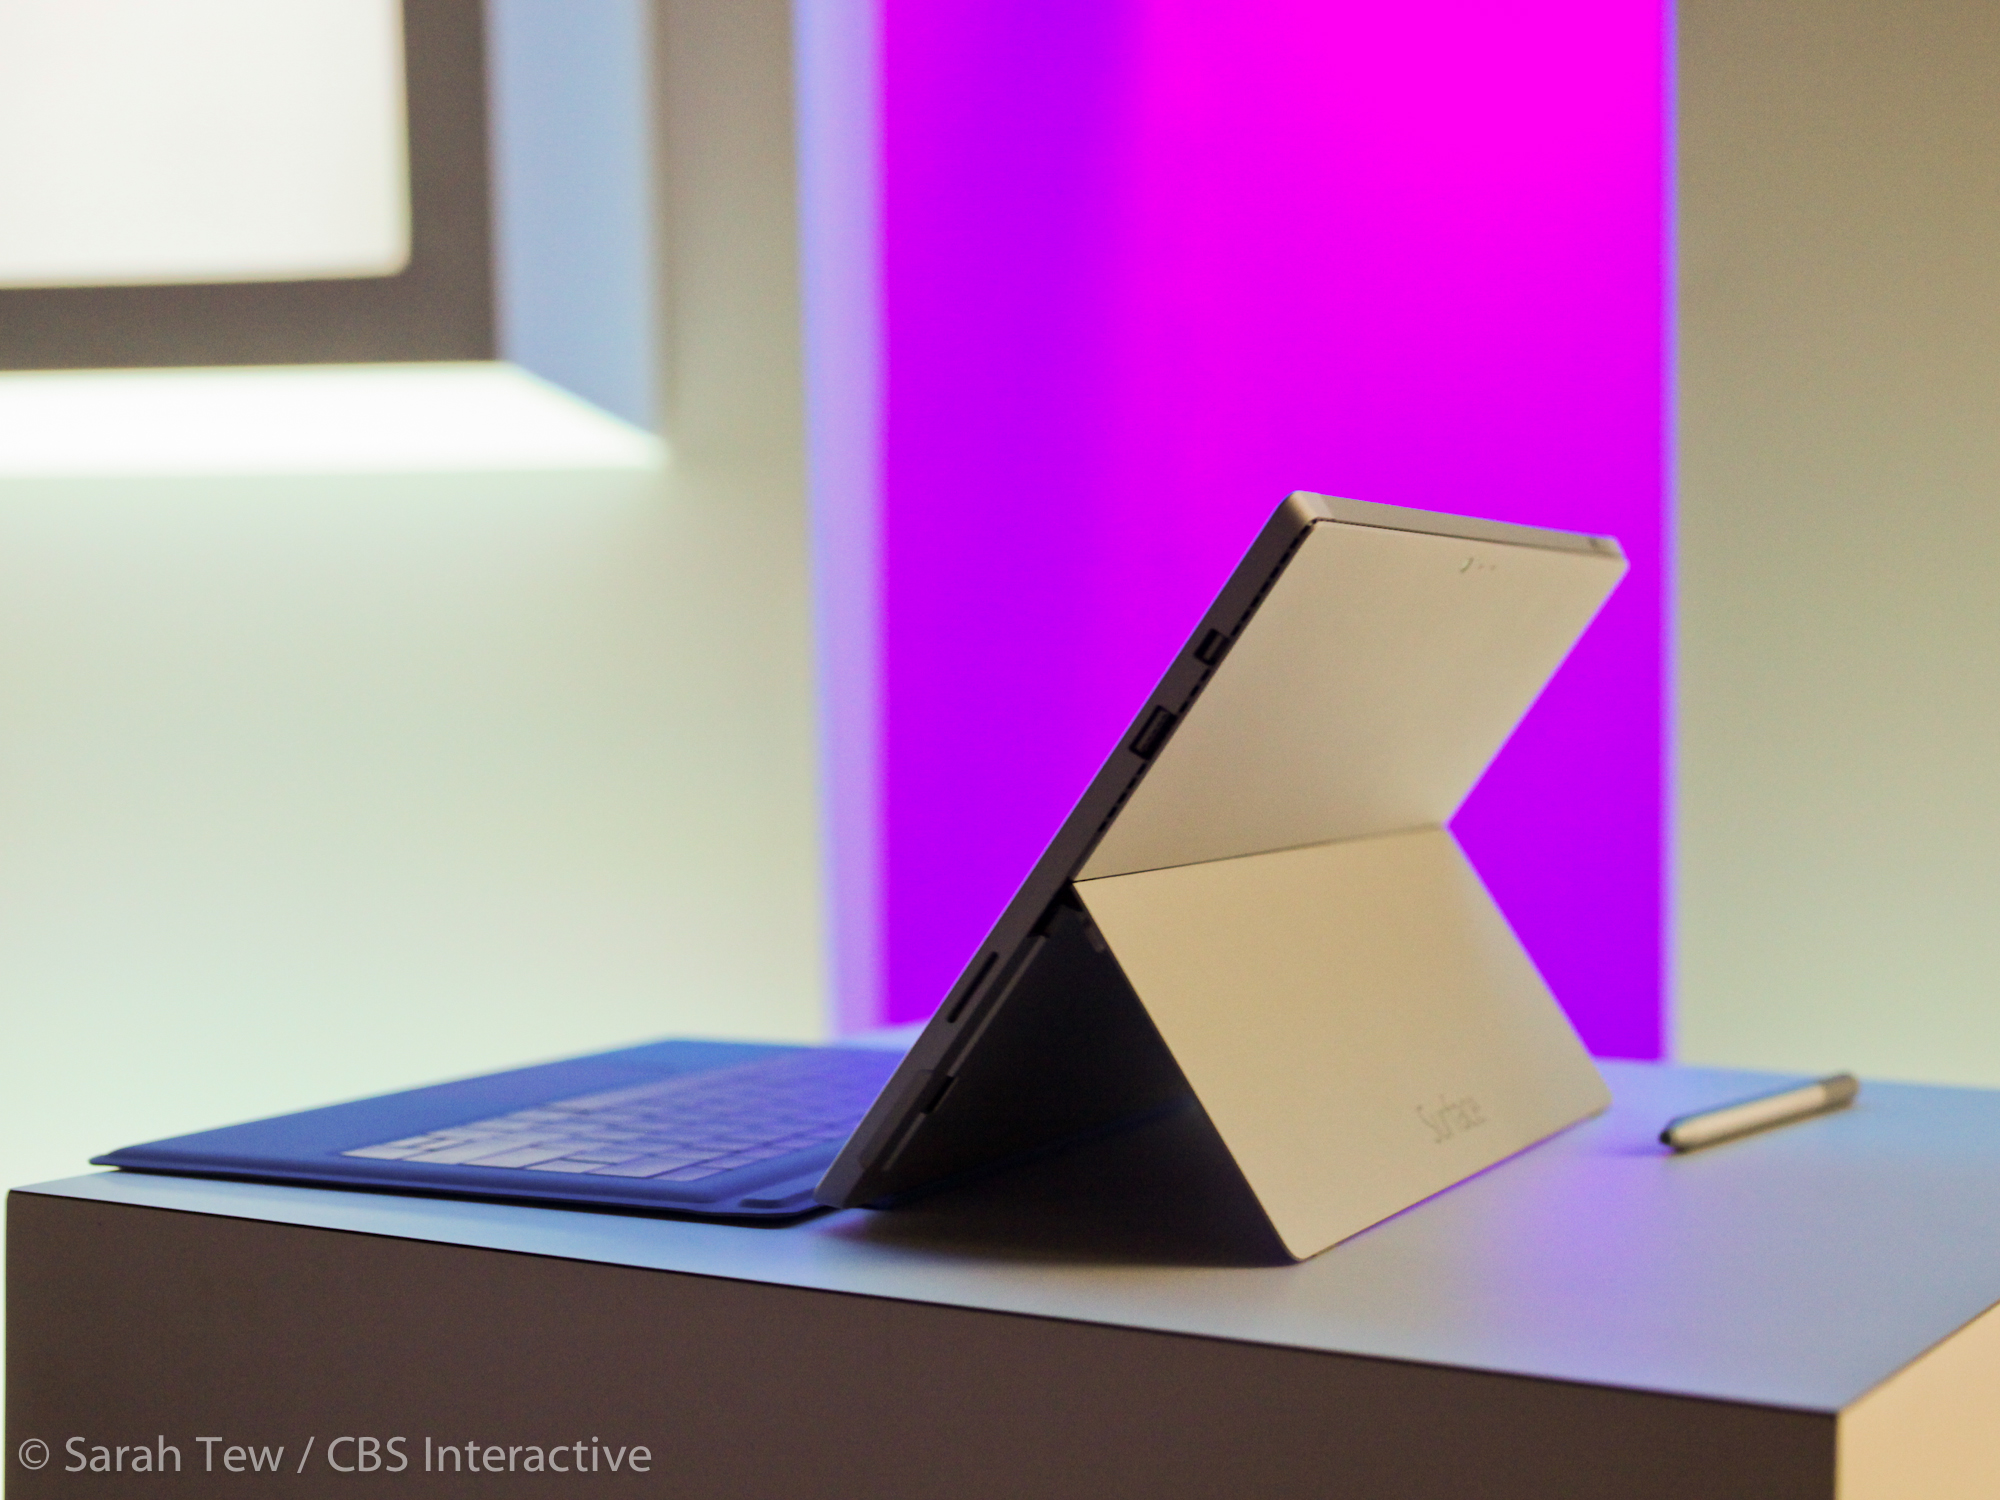 001microsoft-surface-pro-3-product-photos.jpg